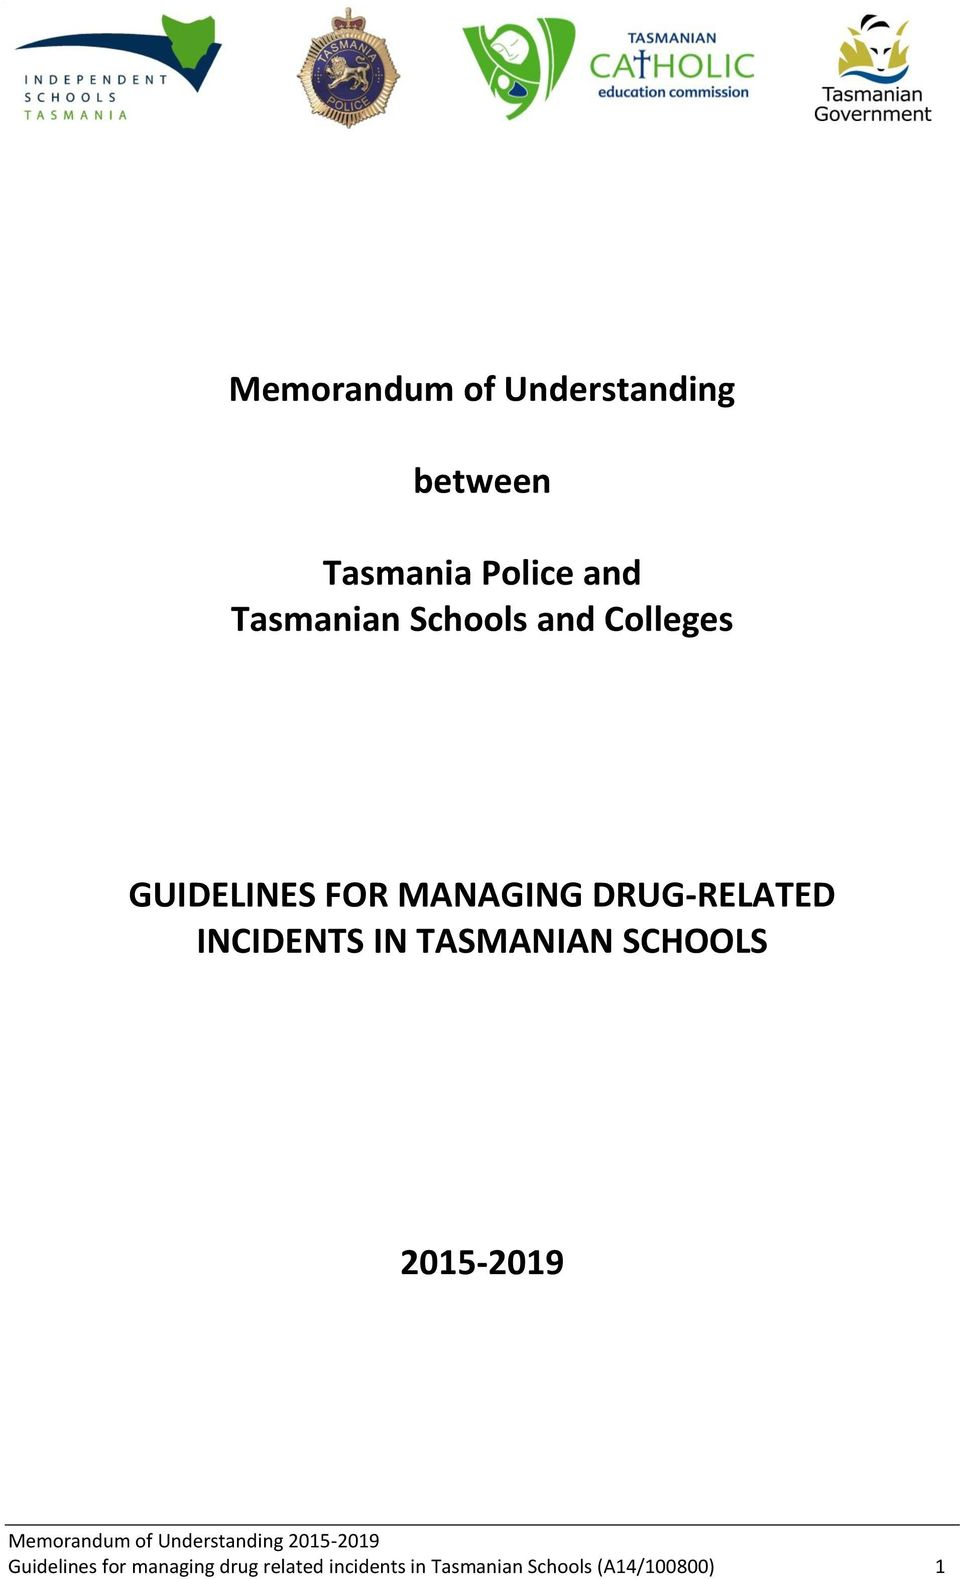 DRUG-RELATED INCIDENTS IN TASMANIAN SCHOOLS 2015-2019